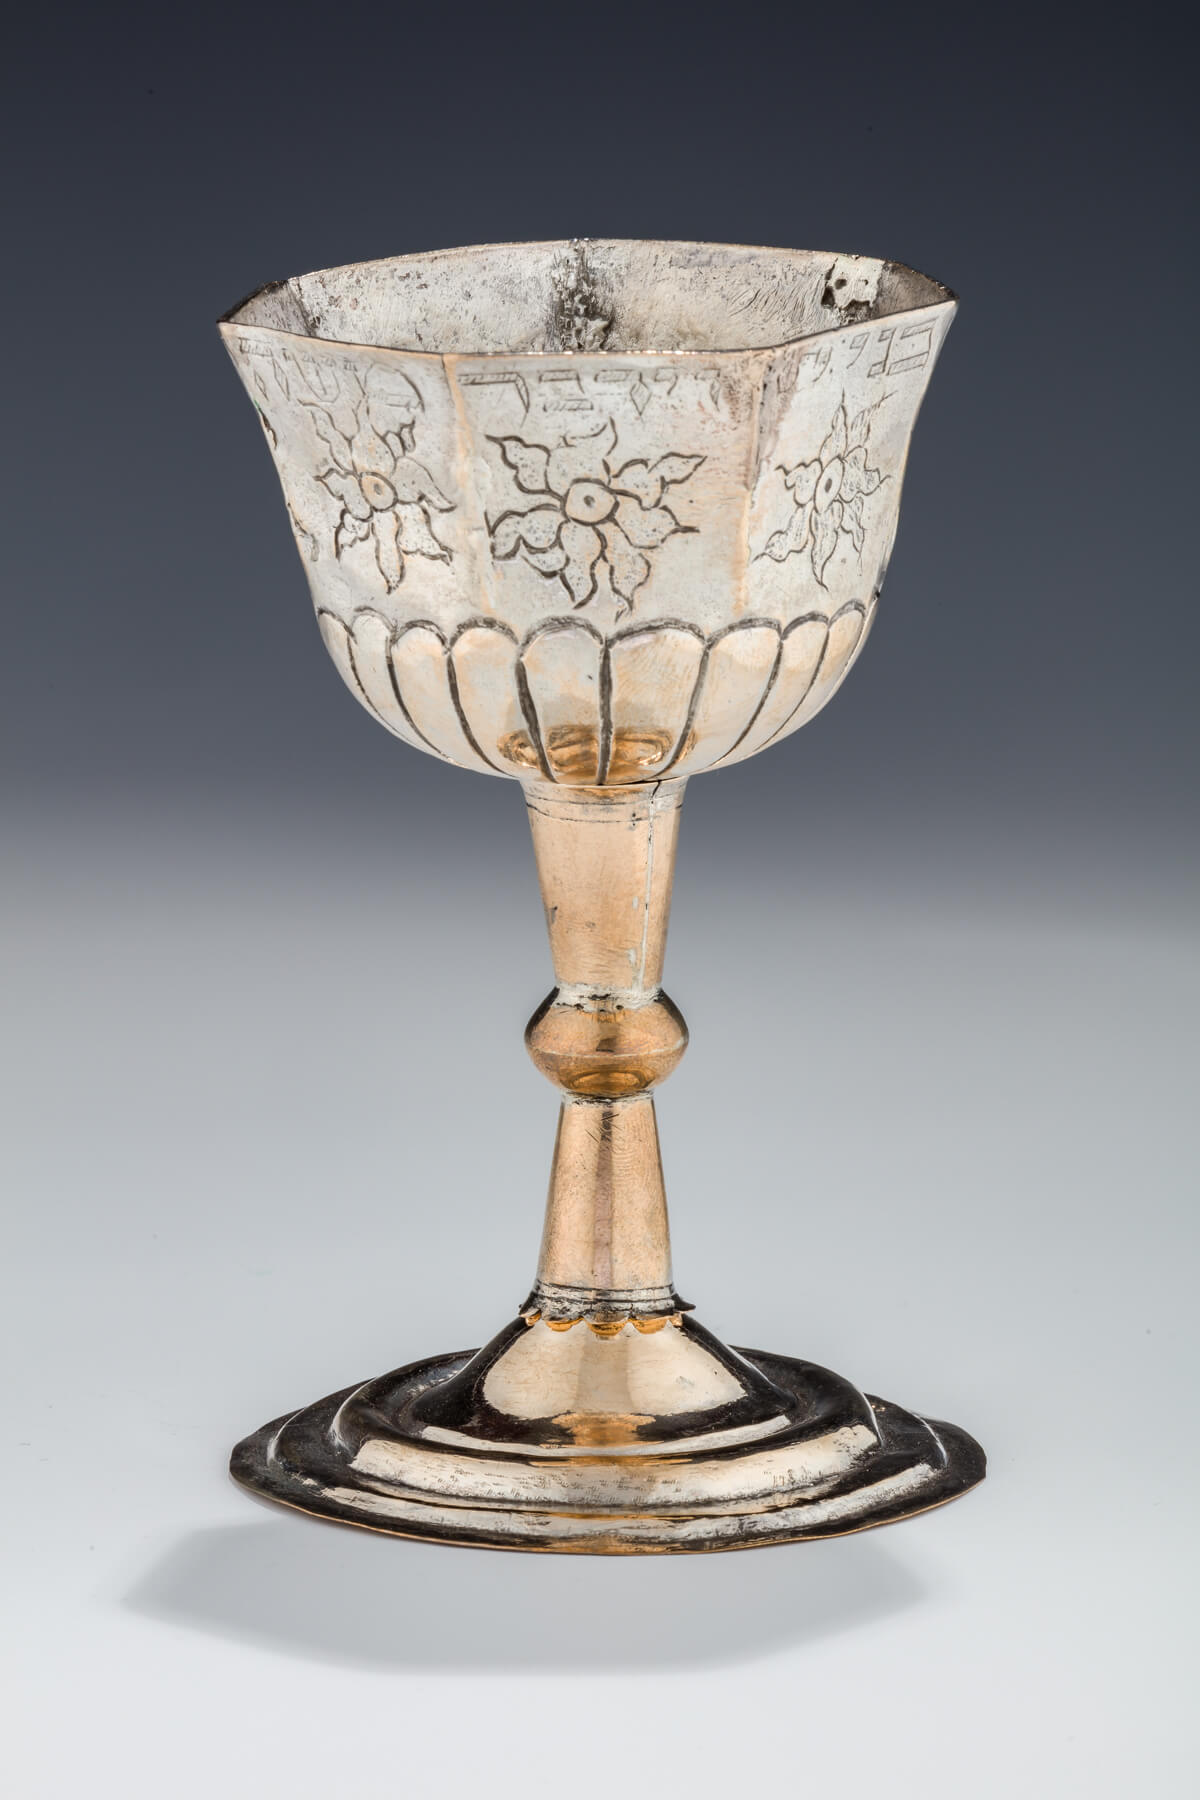 095. A Rare and Early Silver Holiday Kiddush Cup